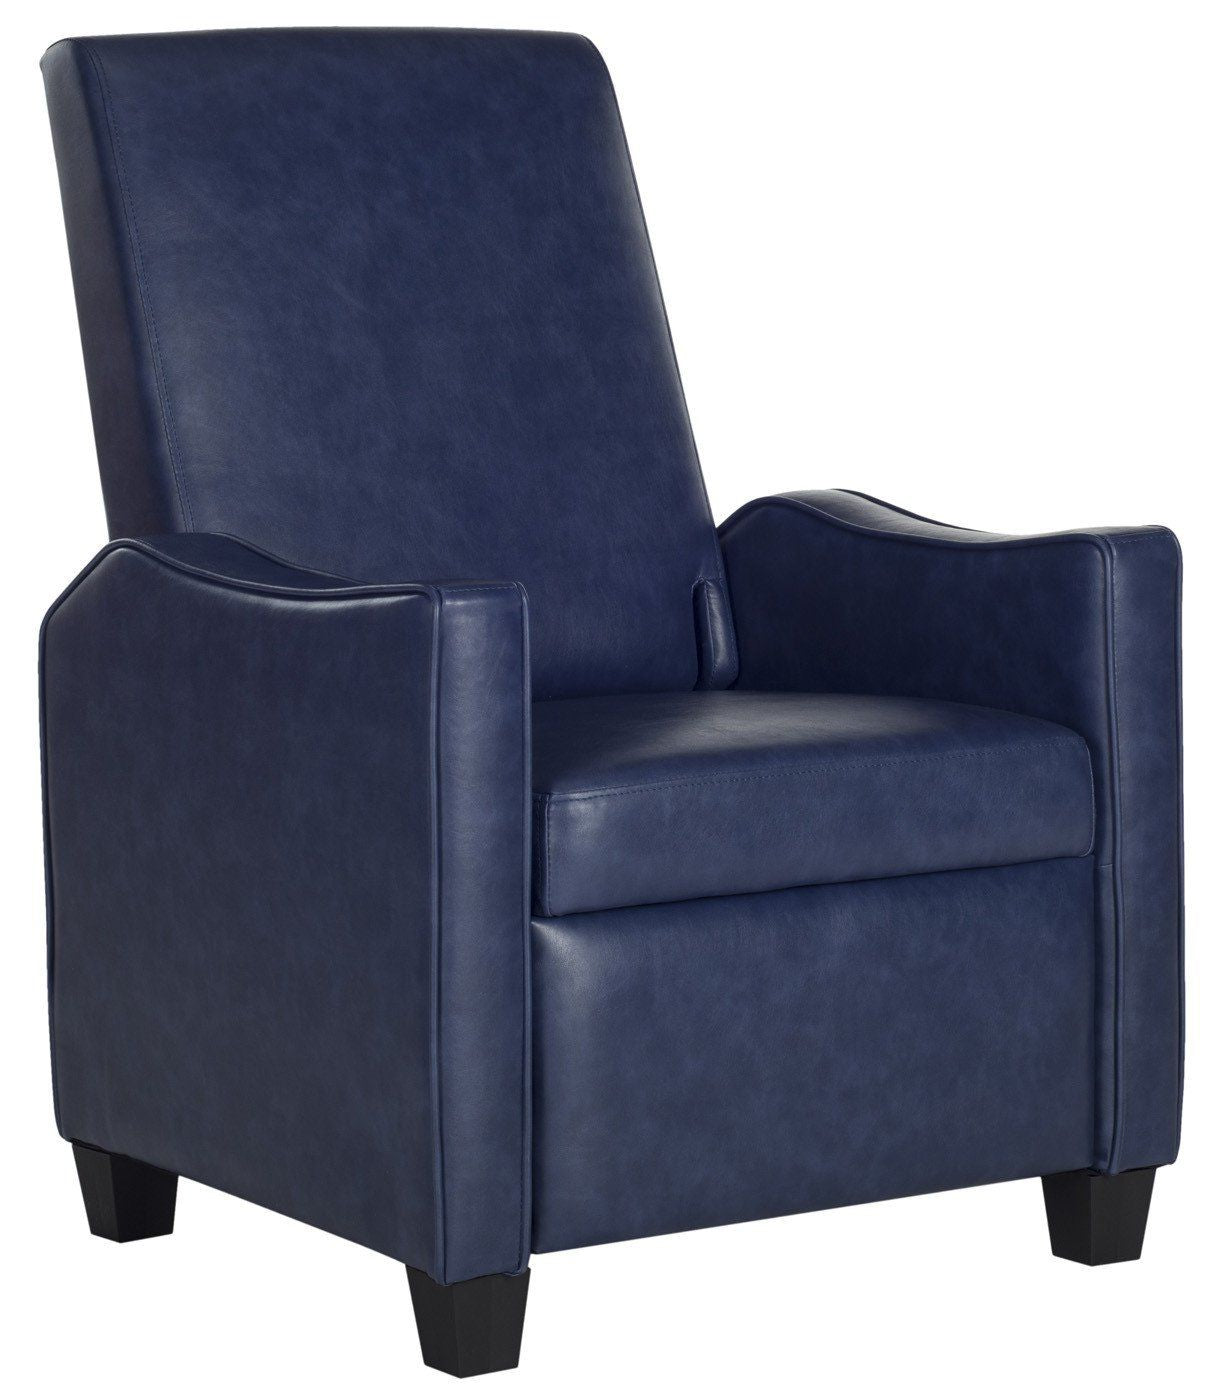 Super Holden Recliner Chair Navy Ocoug Best Dining Table And Chair Ideas Images Ocougorg